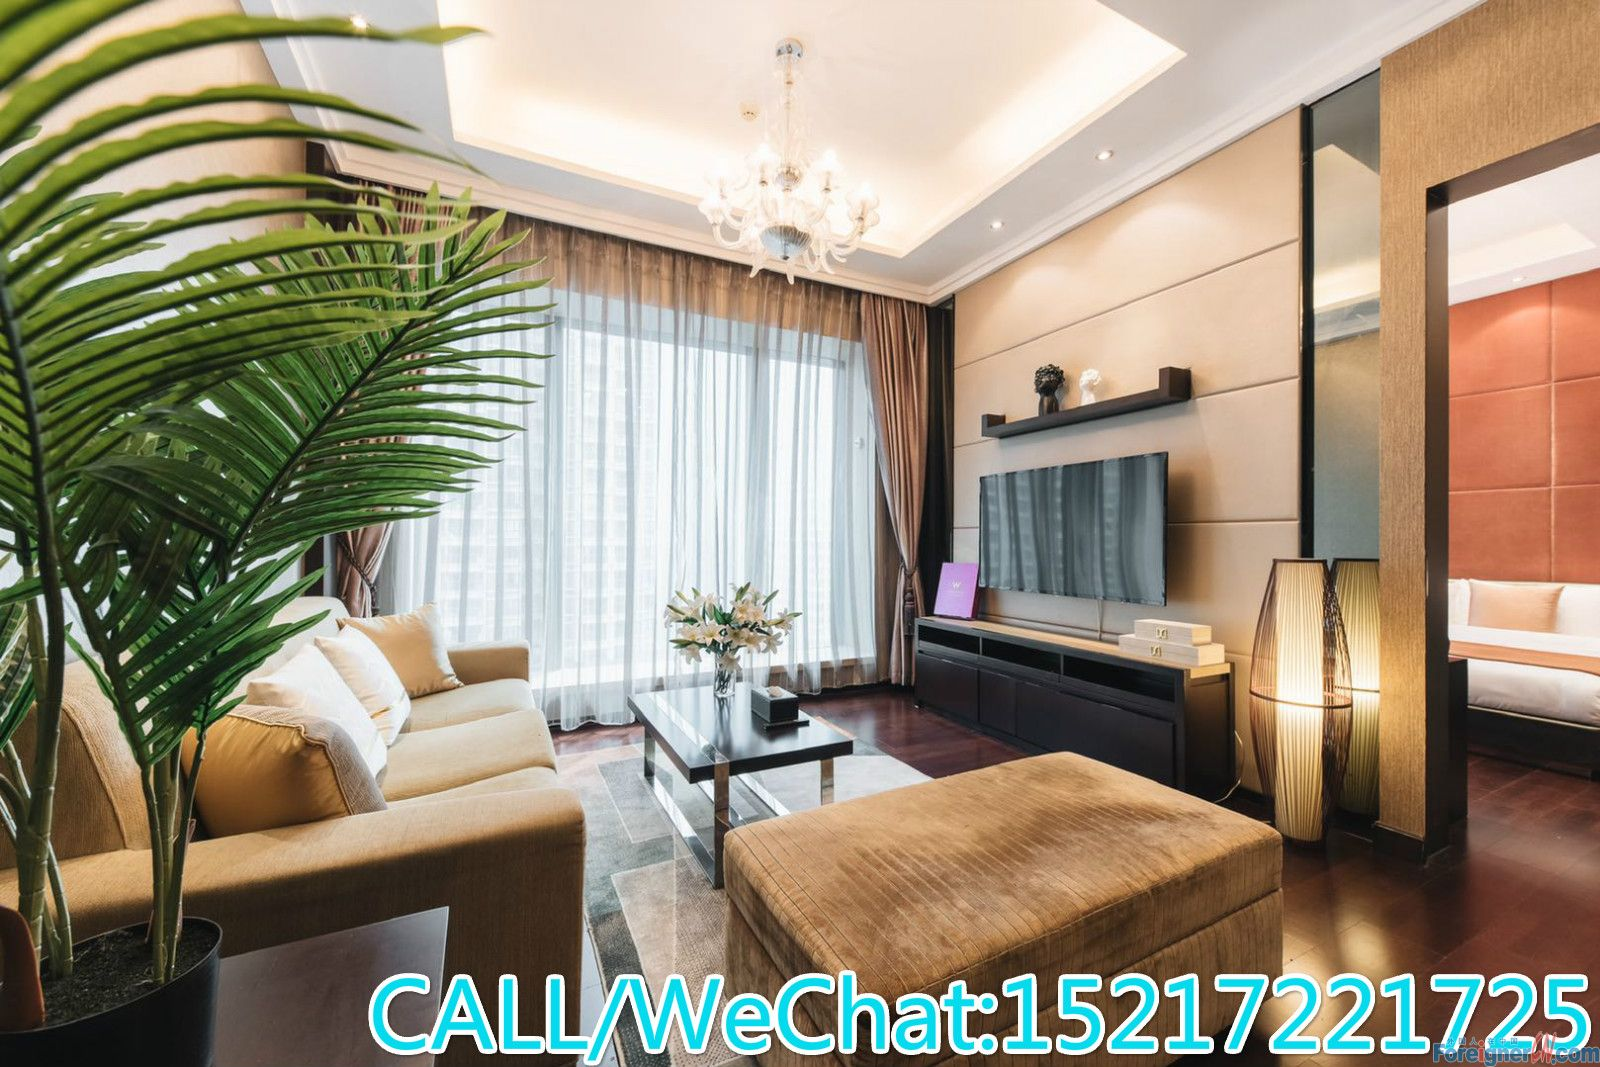 W Building-Modern style 1br with bathtub,facing south and super quietly,good condition.CBD AREA.